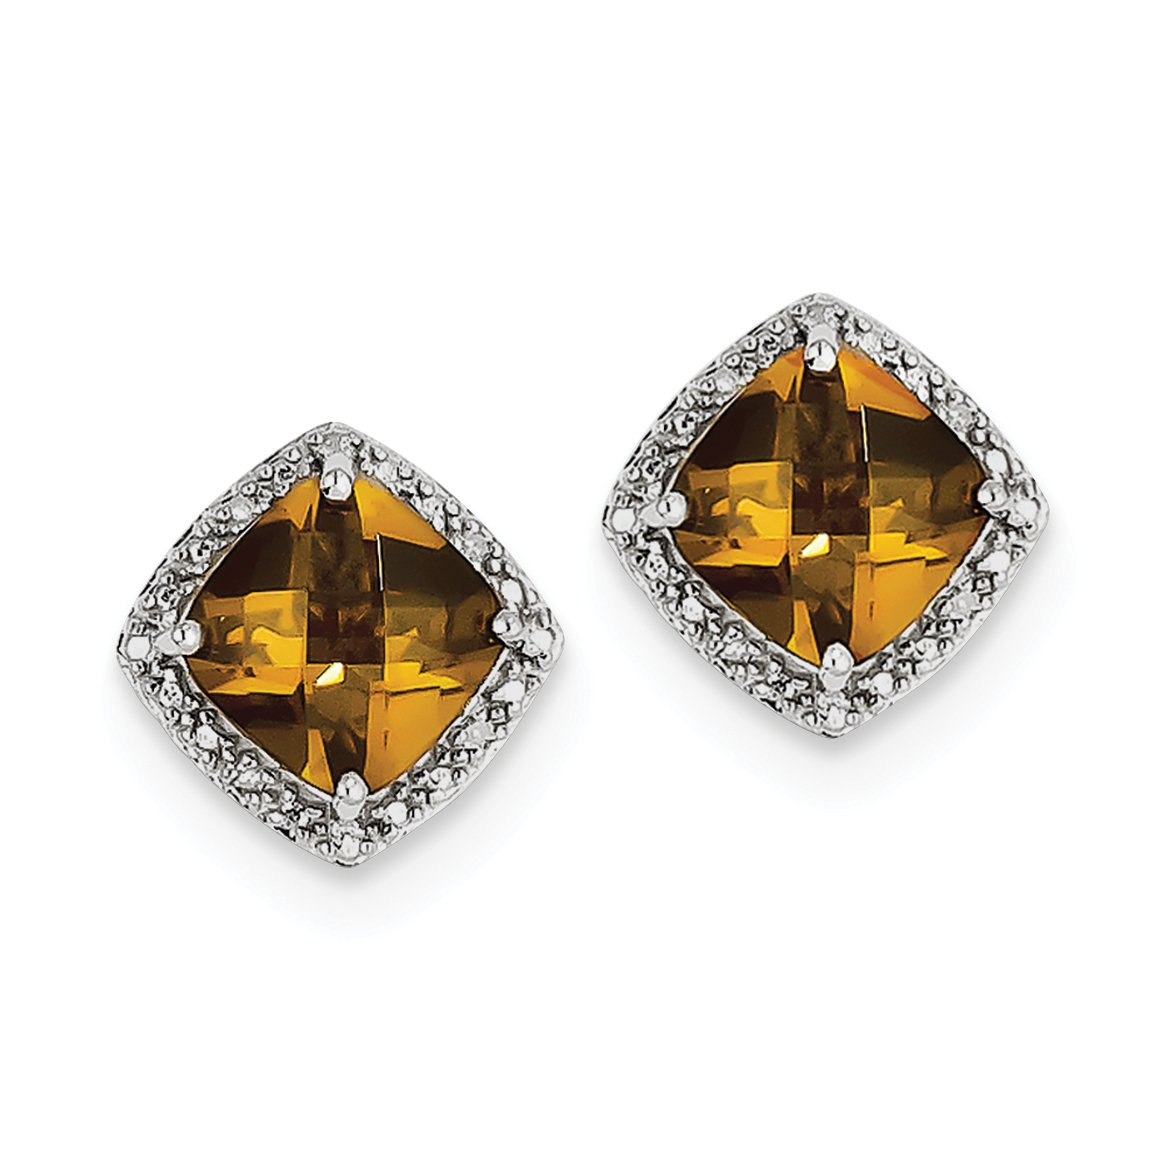 ICE CARATS 925 Sterling Silver Whiskey Quartz Diamond Post Stud Ball Button Earrings